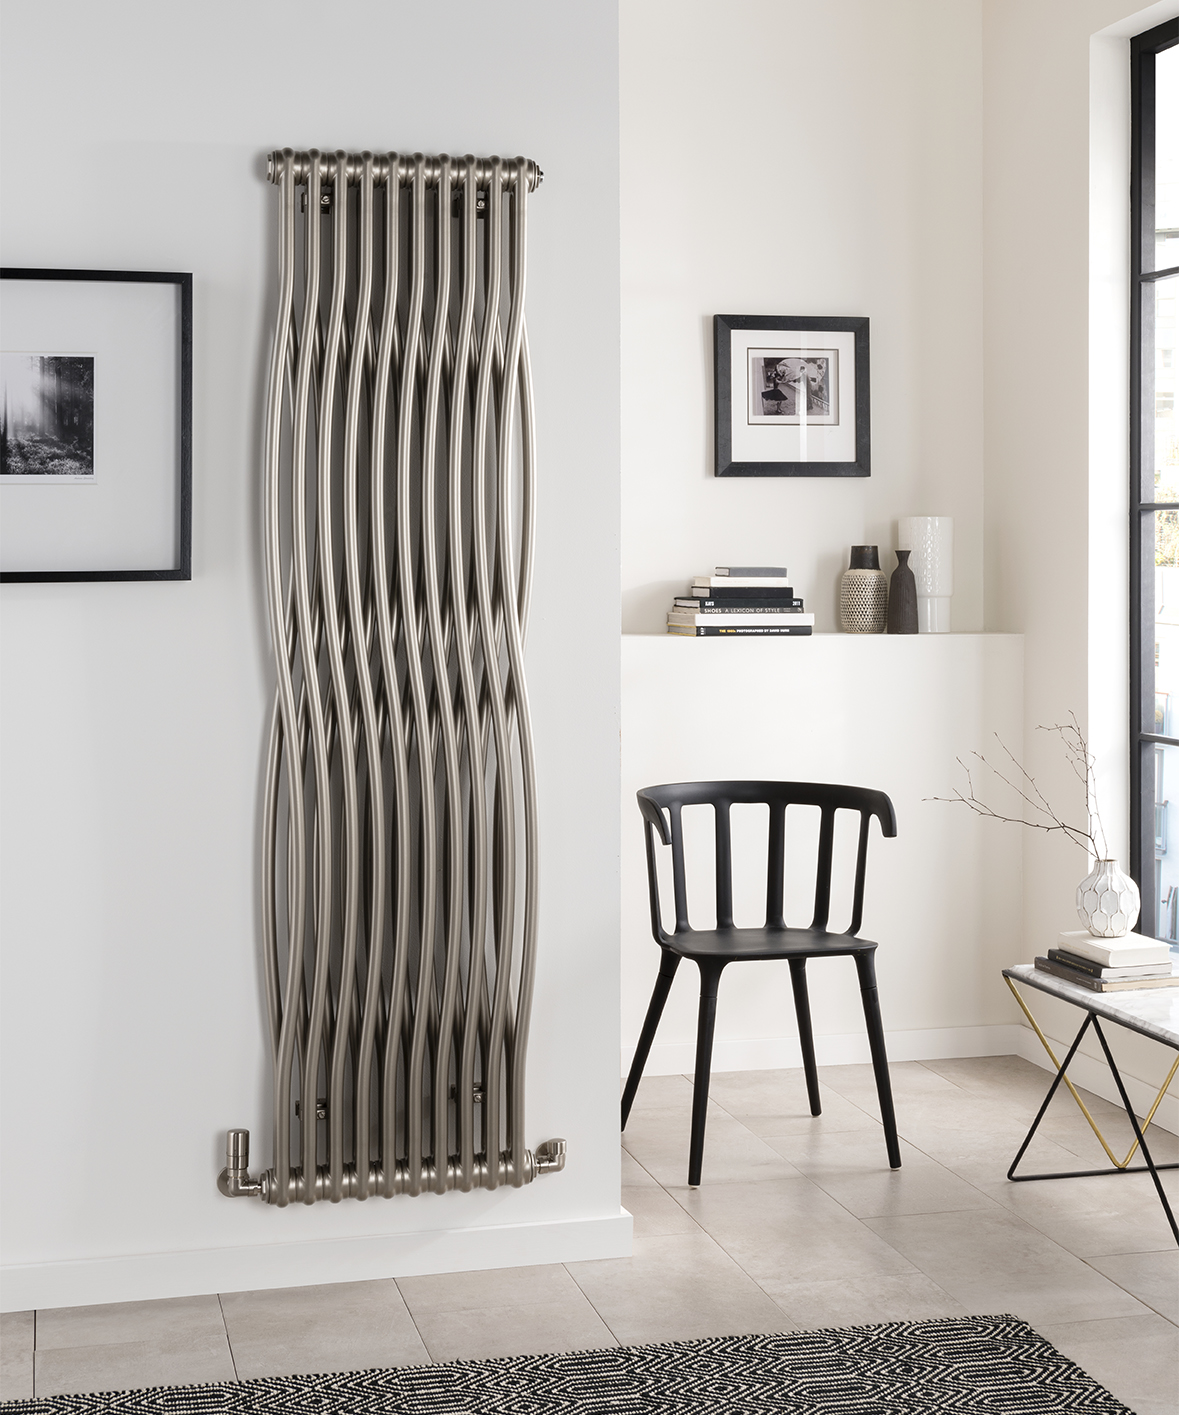 Radiant radiators - Of course, heating is an integral part of transforming your home into a warming winter hideaway. To combine some unique style with practical functionality, you won't want to miss The Radiator Company's Tesi Join; sporting high-quality Italian design and manufacture, the beautifully shaped, steel multi-column heater will make a real statement on your walls. There are six models in the range, which are priced from £873.60 – take a look for yourself at www.theradiatorcompany.co.uk